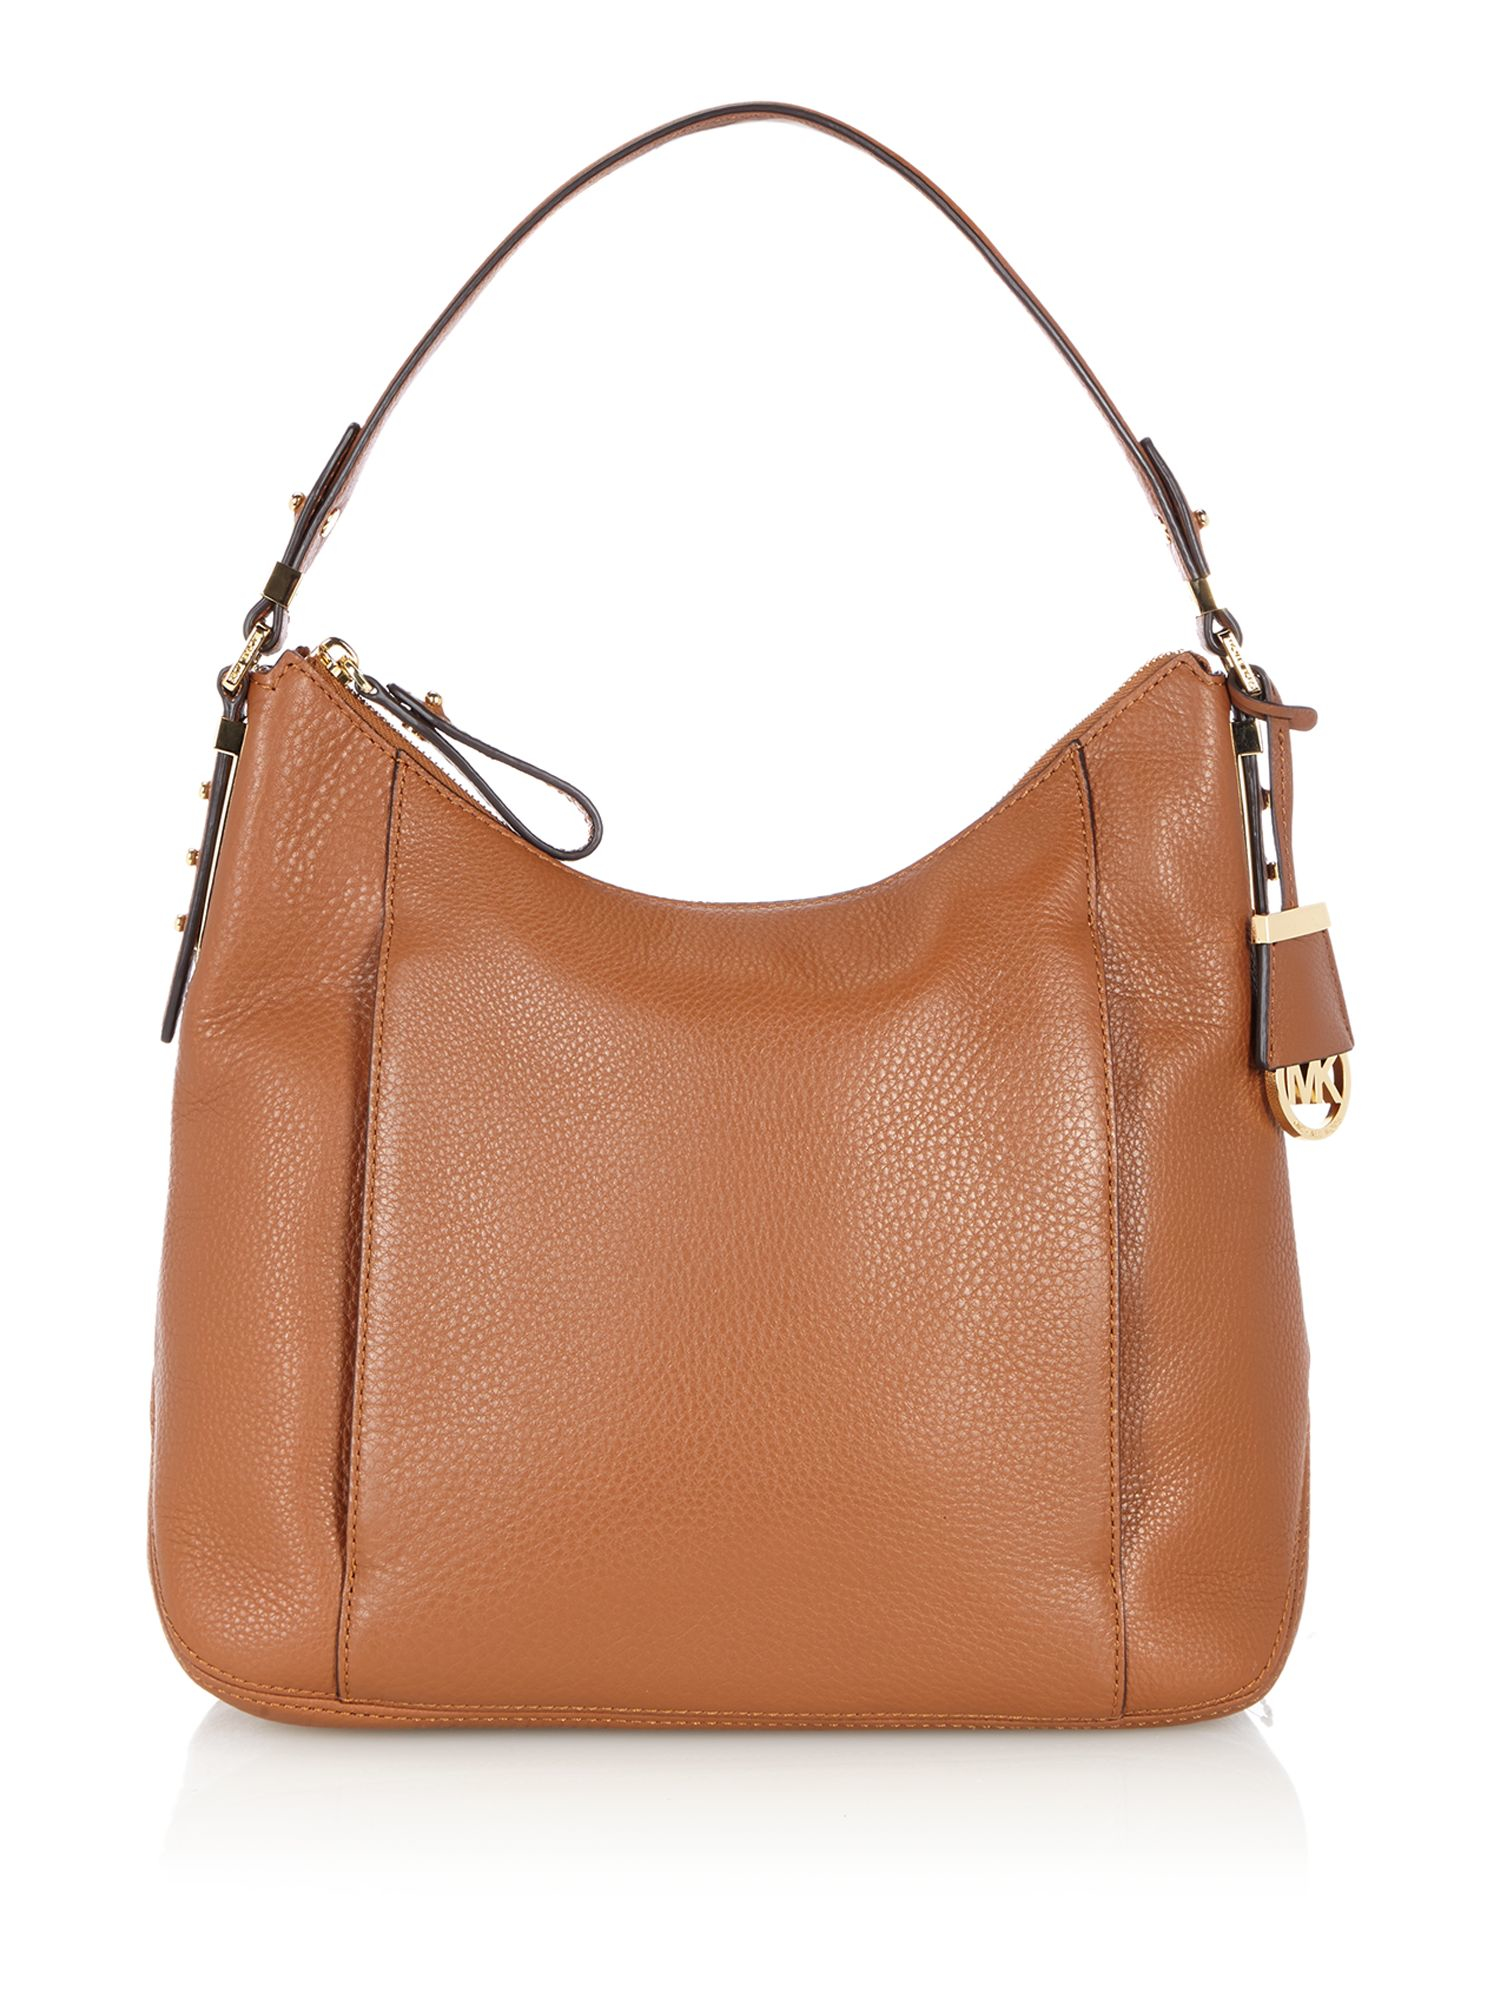 michael kors bowery tan large hobo bag in brown lyst. Black Bedroom Furniture Sets. Home Design Ideas